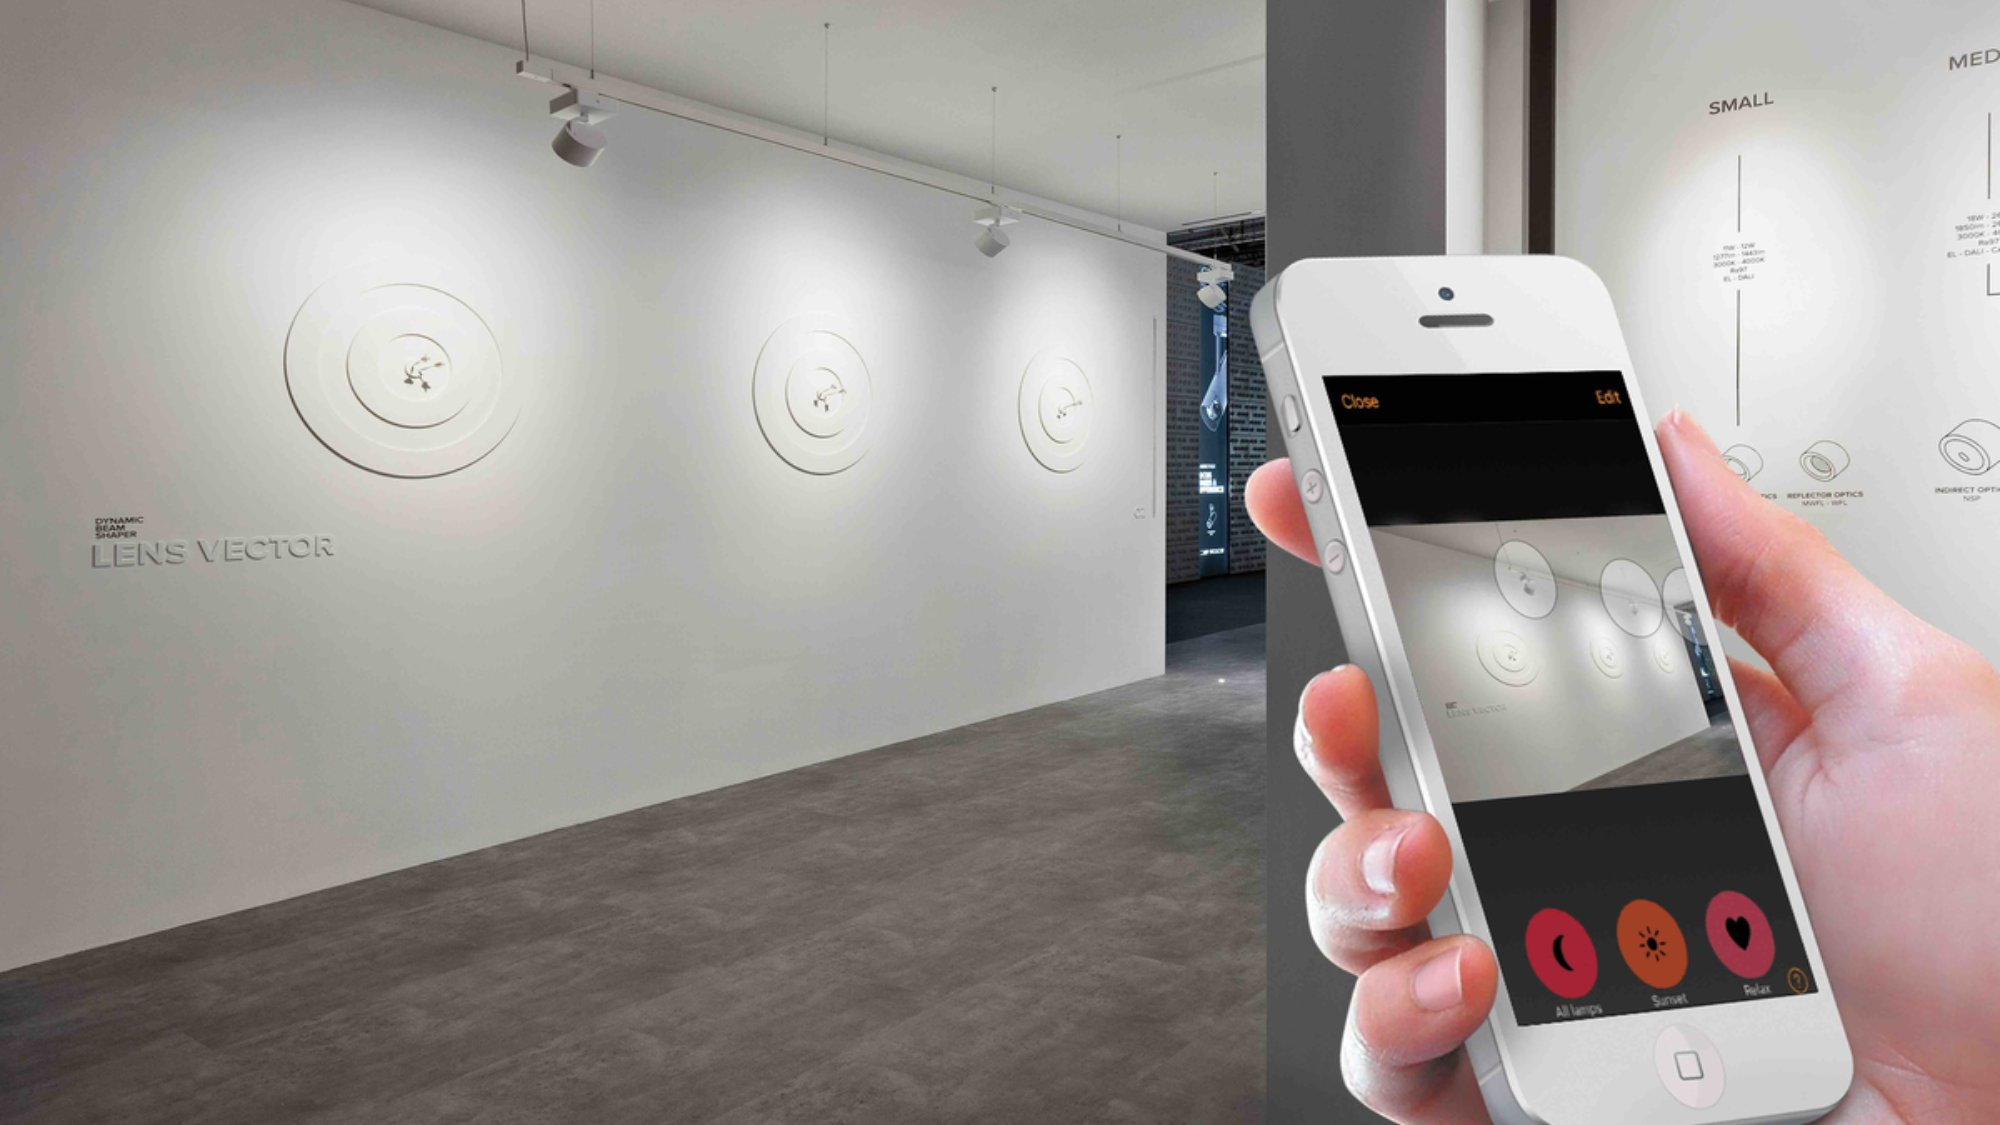 mobile phone used to wirelessly control lighting